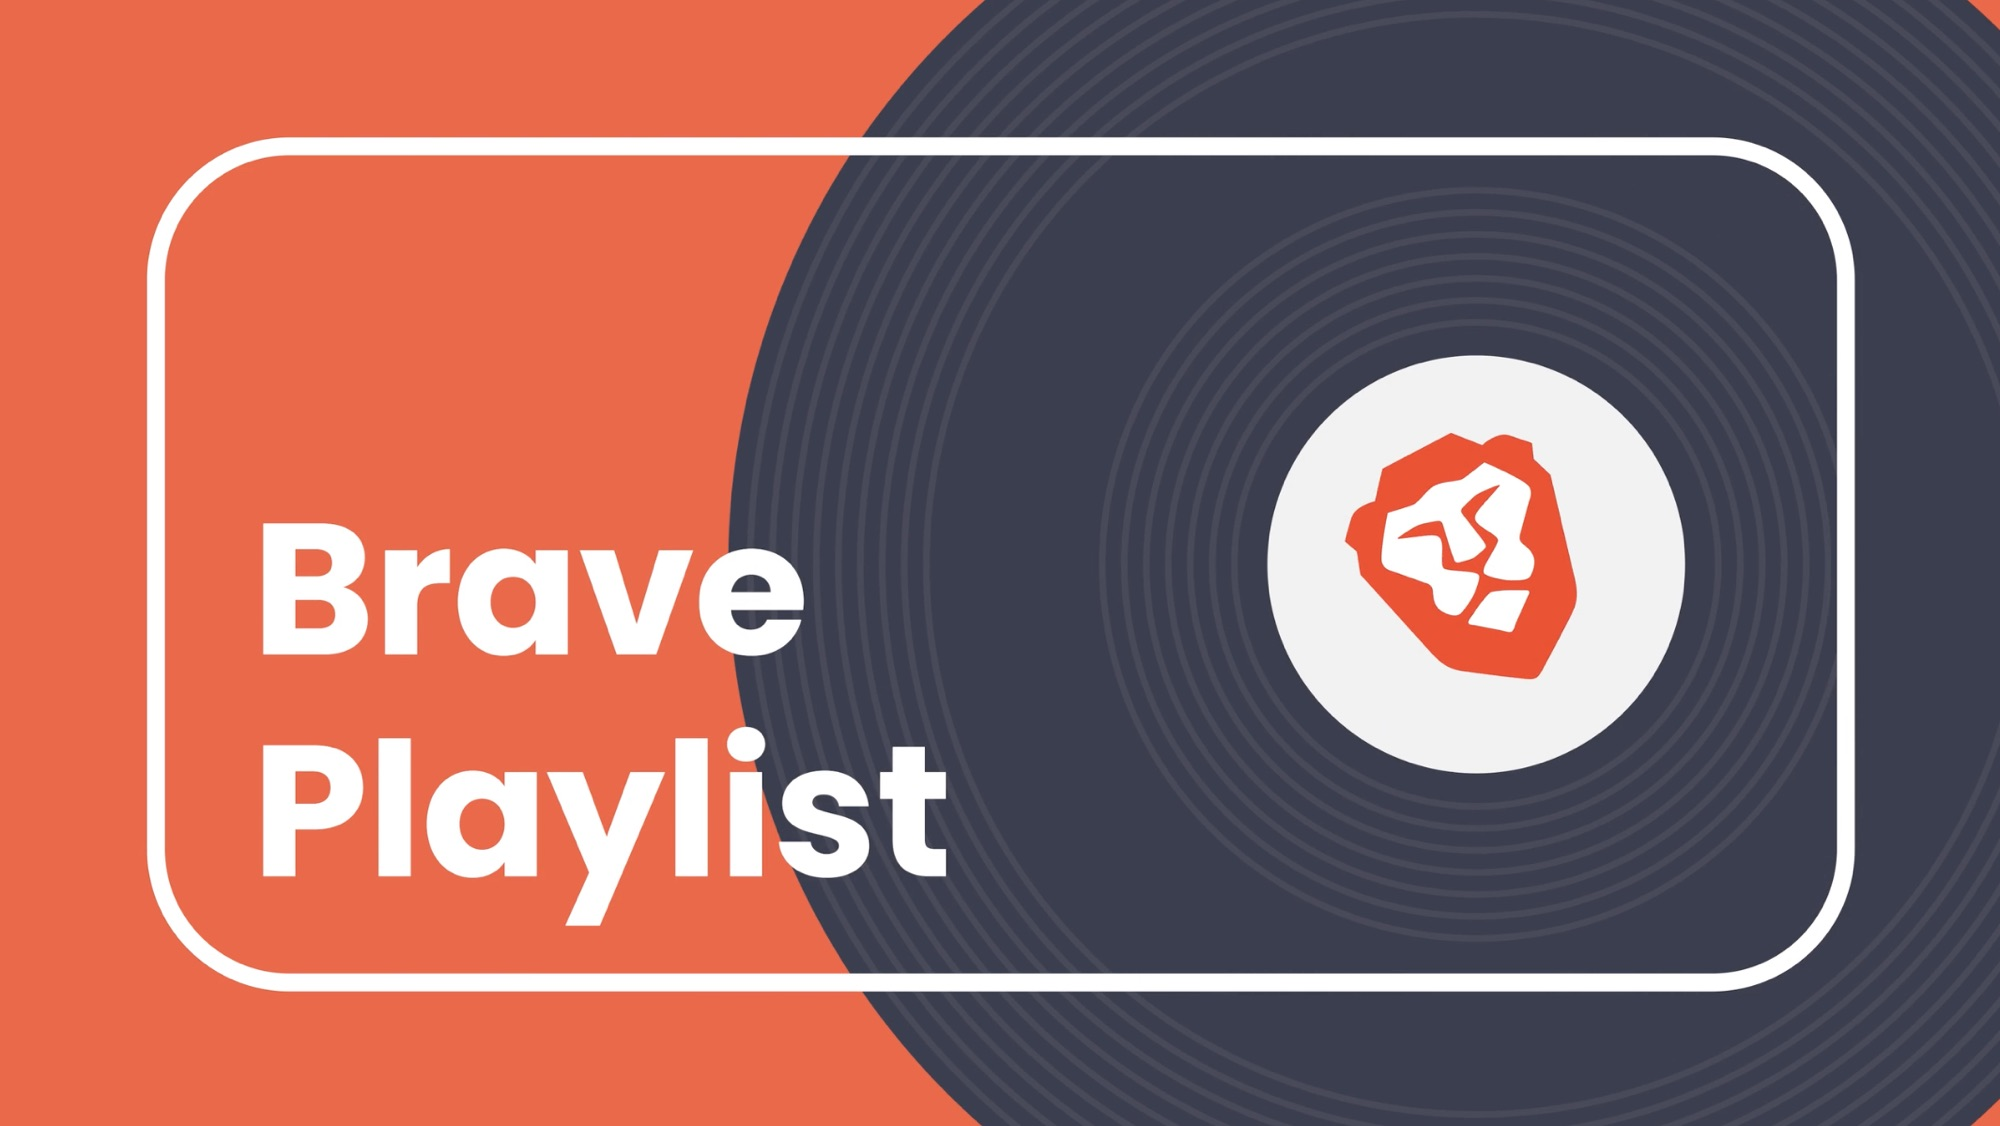 Brave Browser for iOS Gains New Playlist Feature for Queueing Video and Audio Content